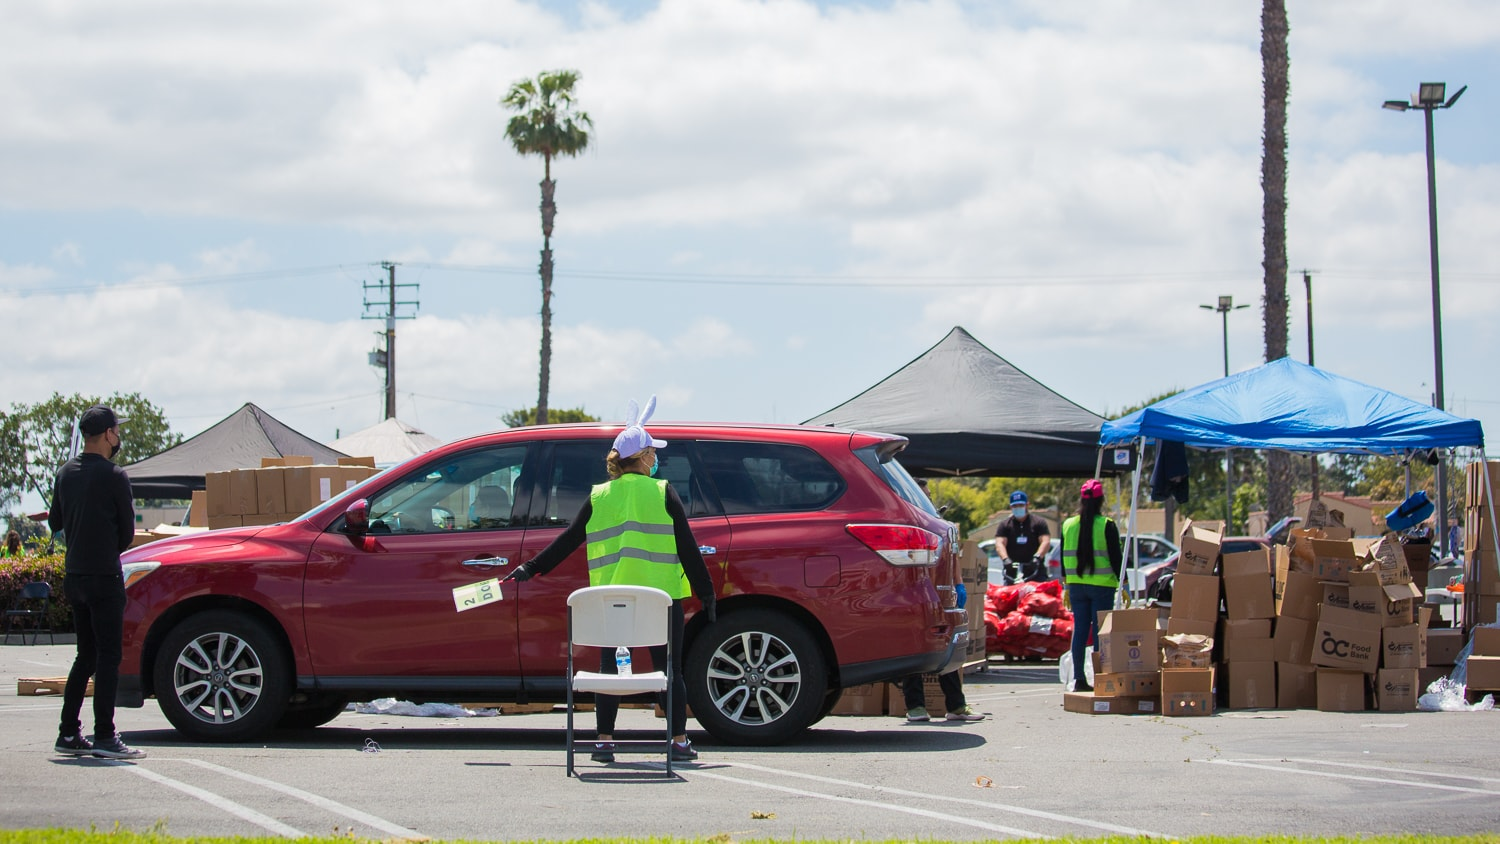 costa mesa temporarily waives permits for drive through food pantries farmers marketsvoice of oc drive through food pantries farmers